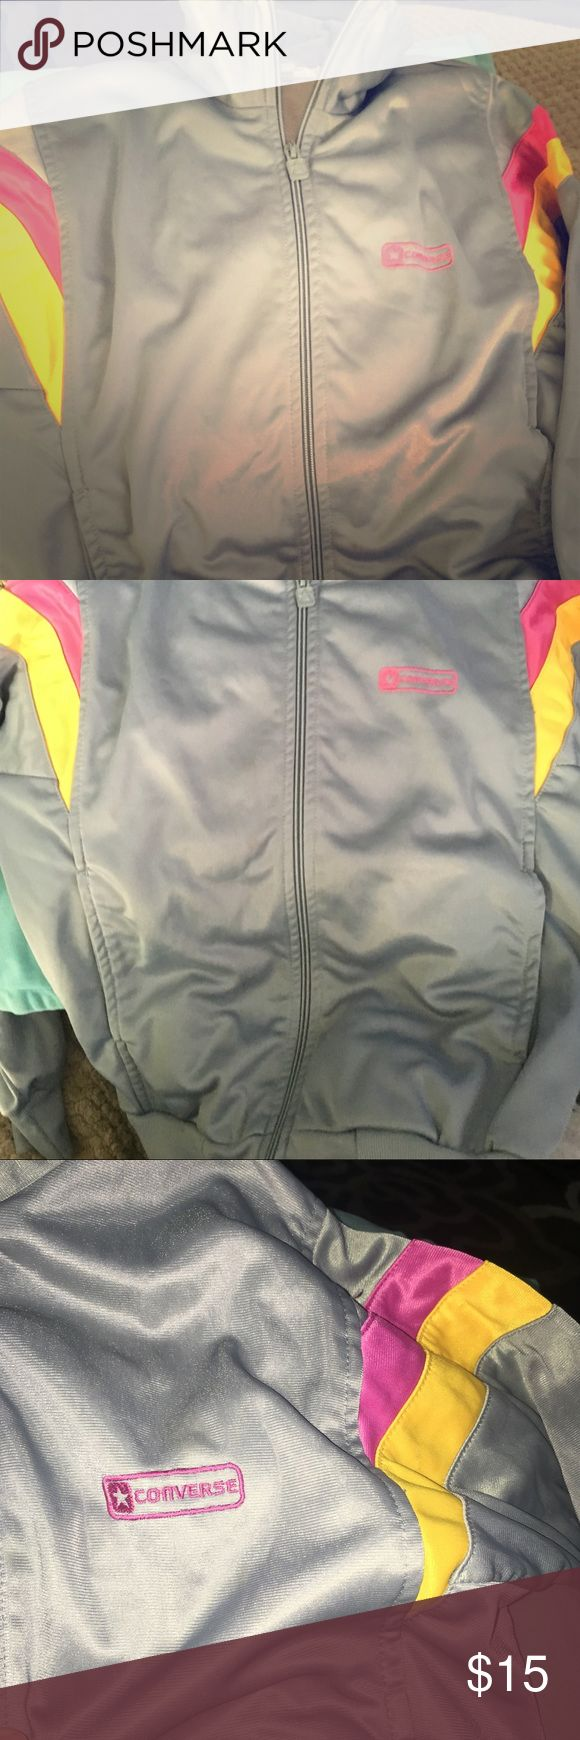 Converse Zip Up Cute and Comfortable converse zip up sweater. Like new condition. Perfect for this spring! Converse Jackets & Coats